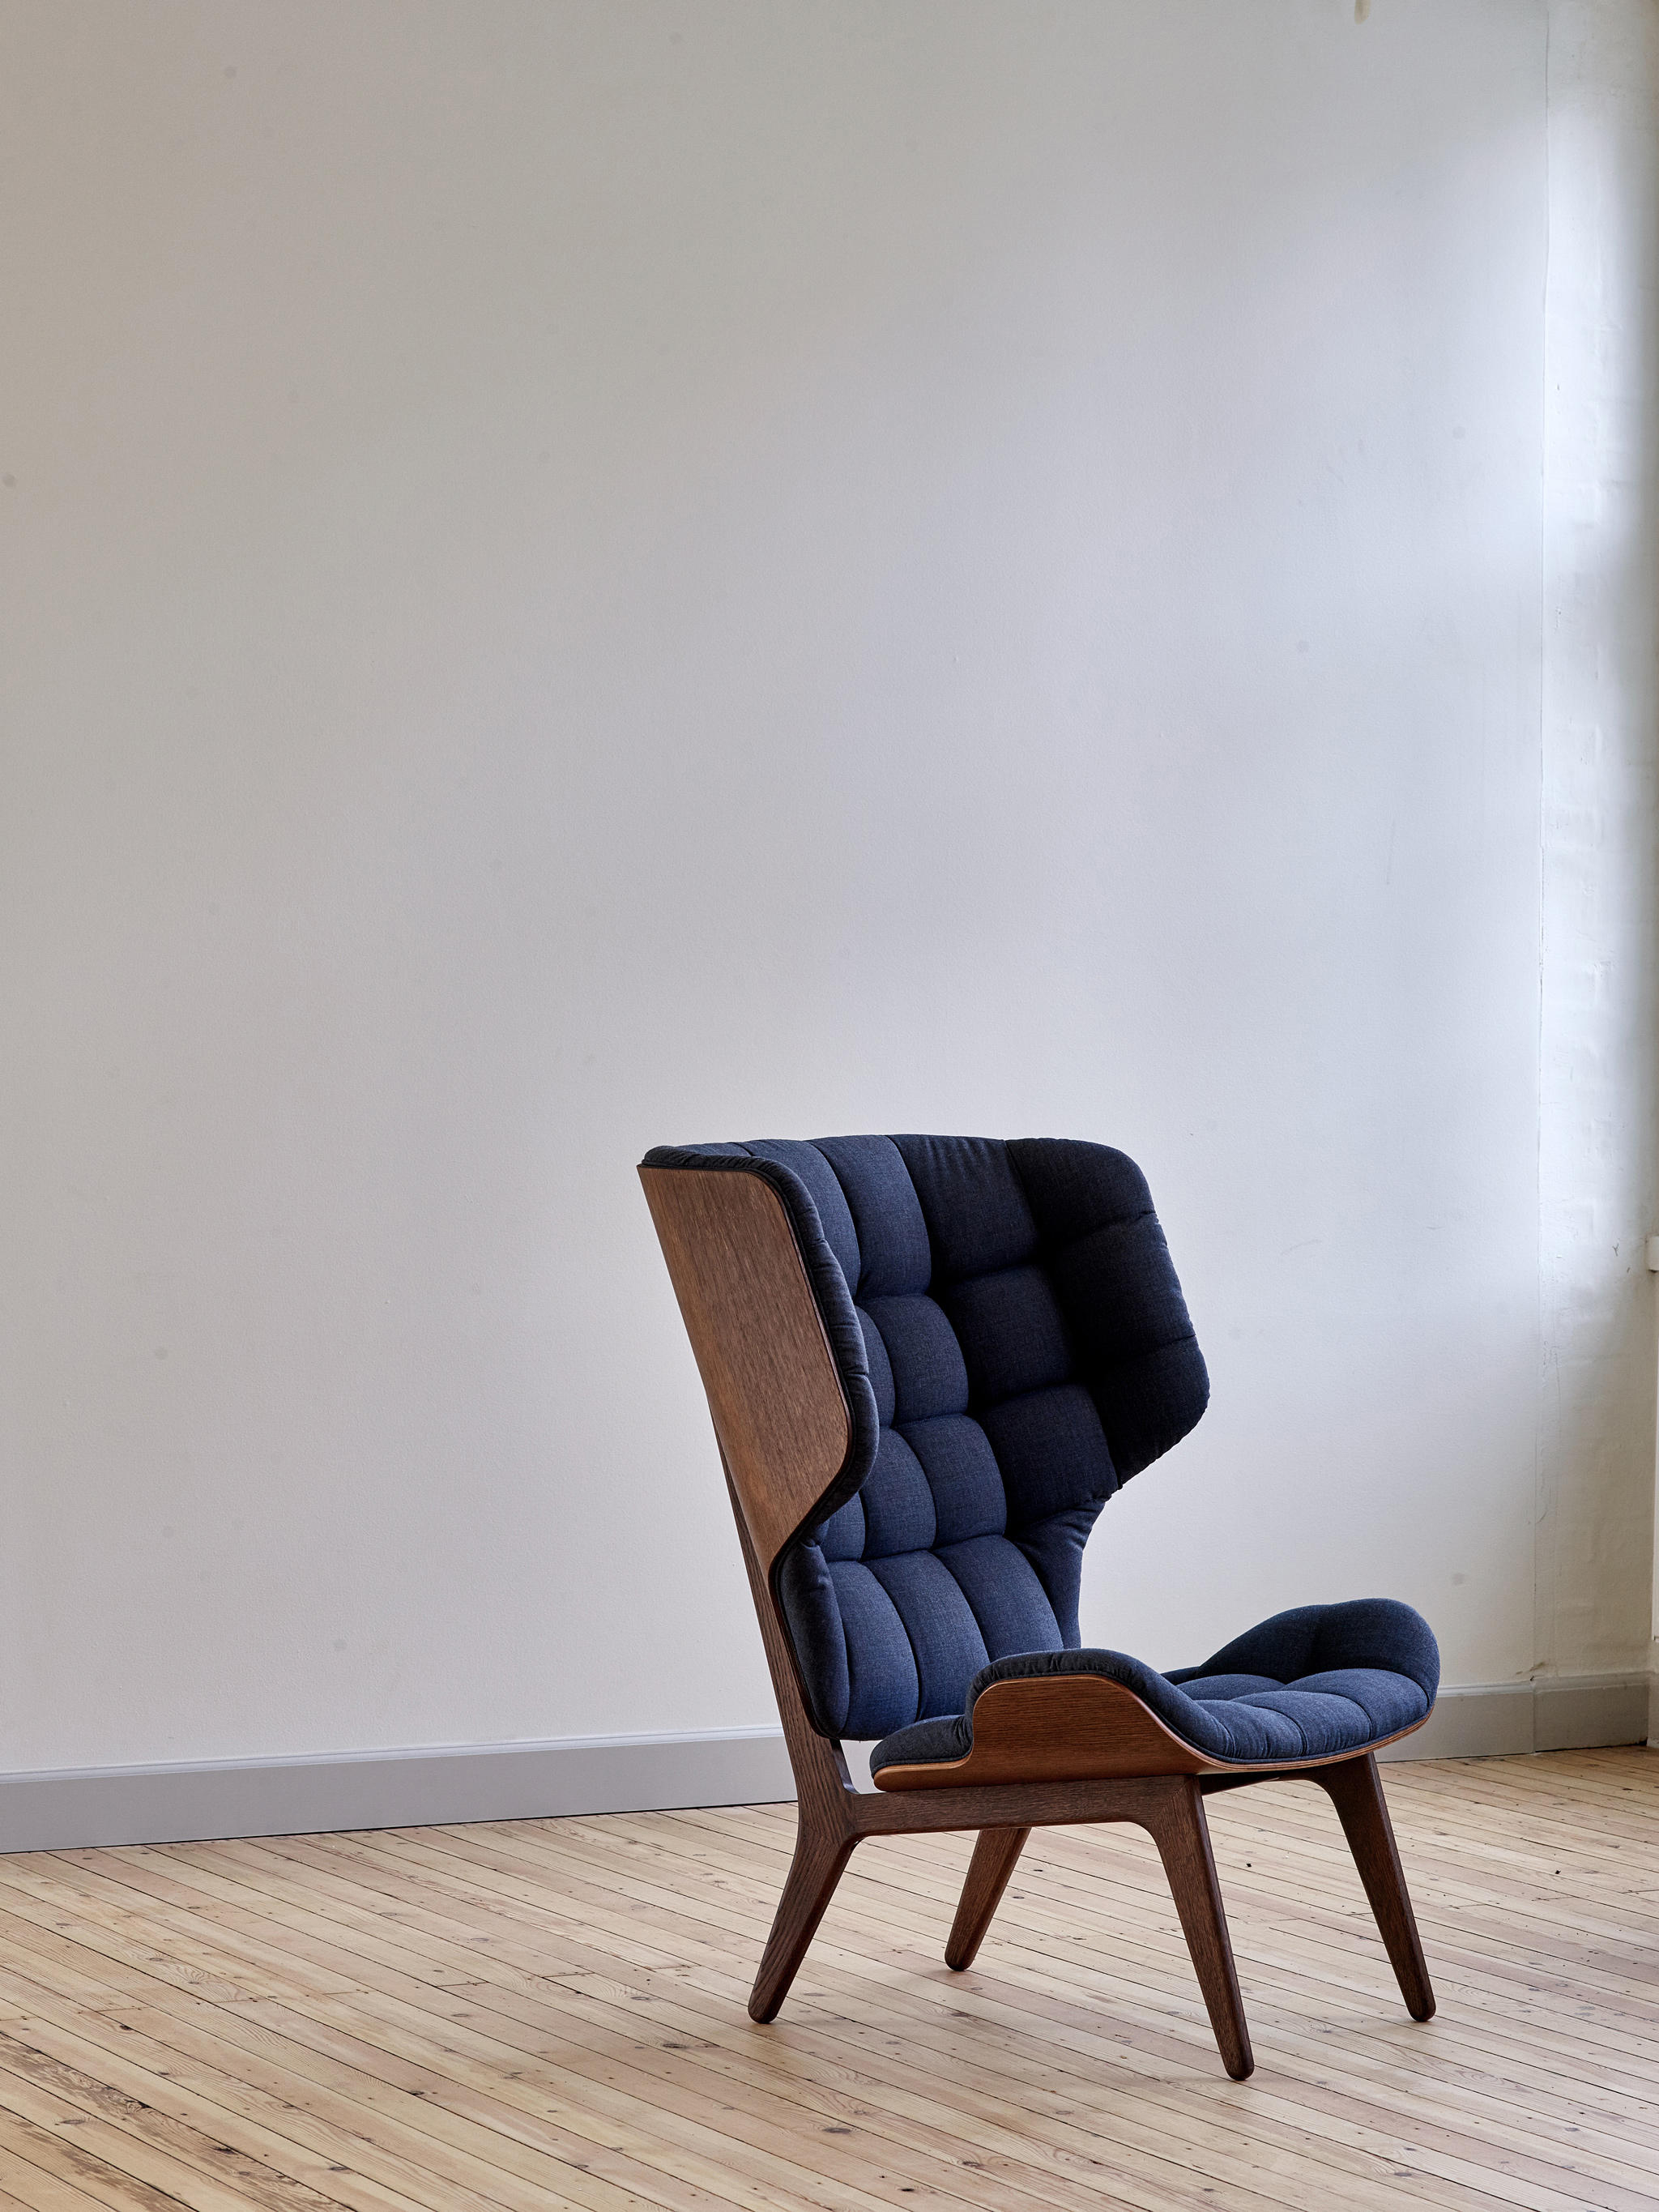 MAMMOTH CHAIR LIMITED EDITION BLACK FABRICKVADRATBASEL 189 FABRIC KVADRAT BASEL 189  Lounge